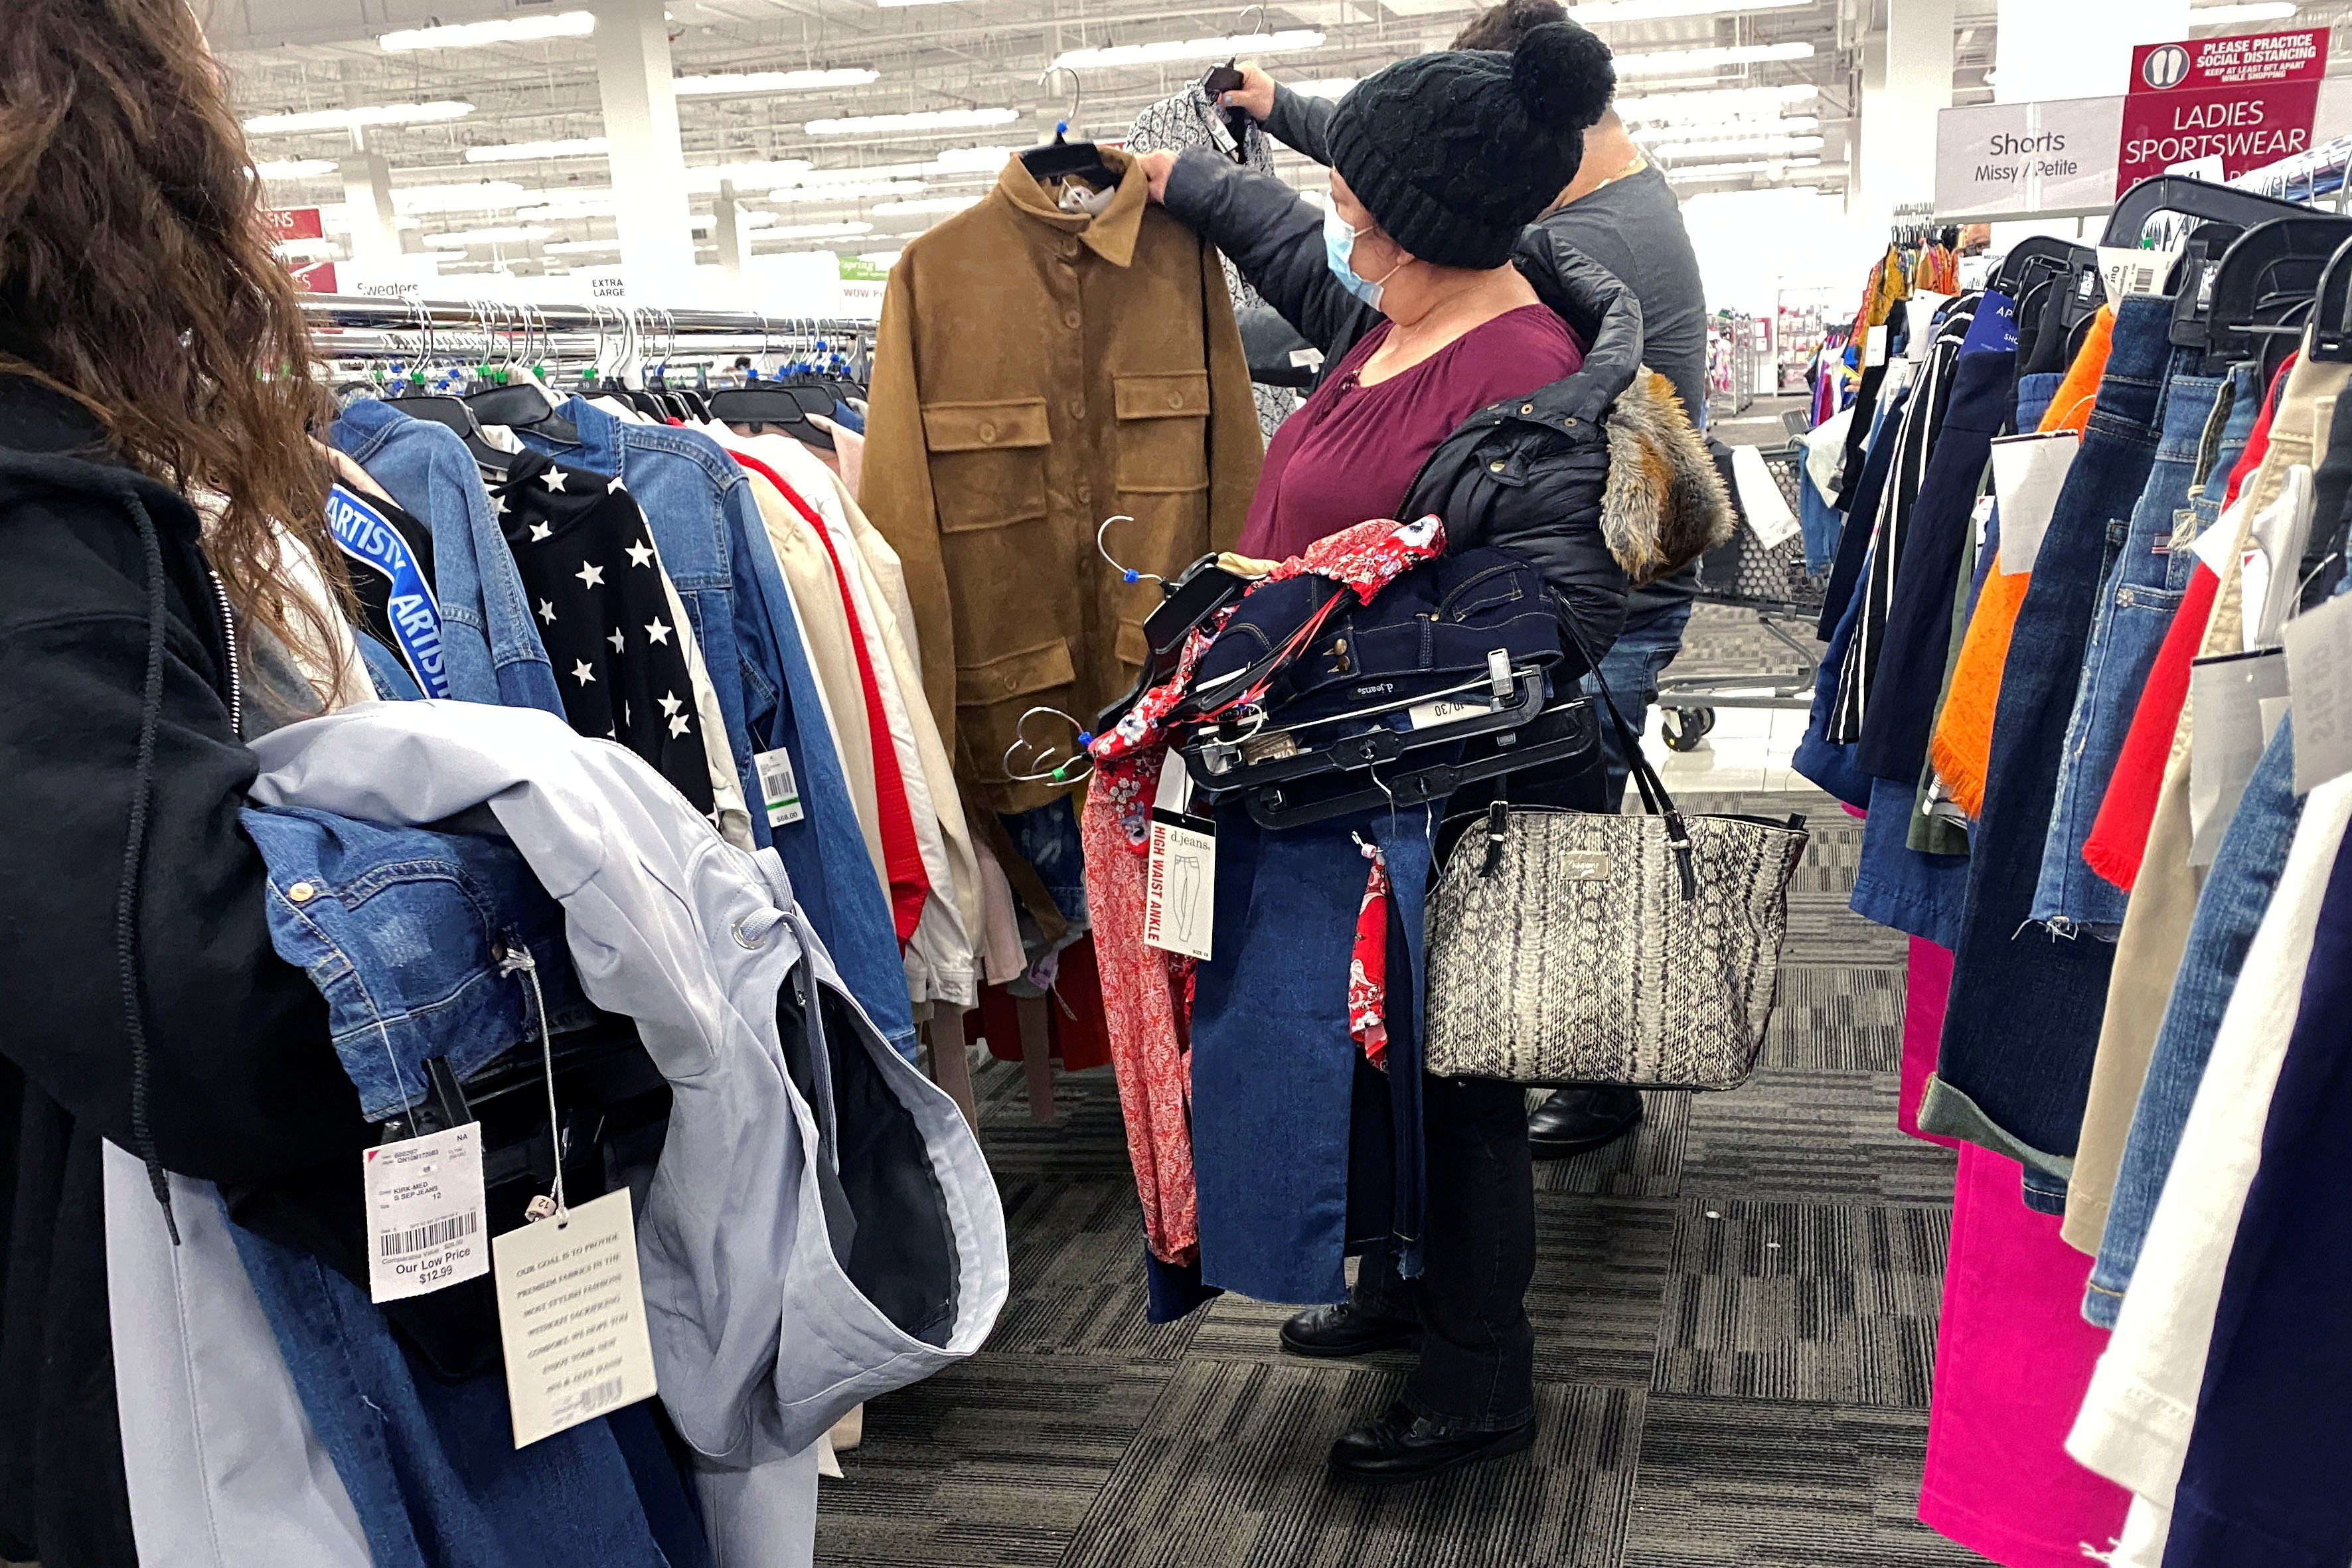 a woman holds up a clothing item in a clothing store